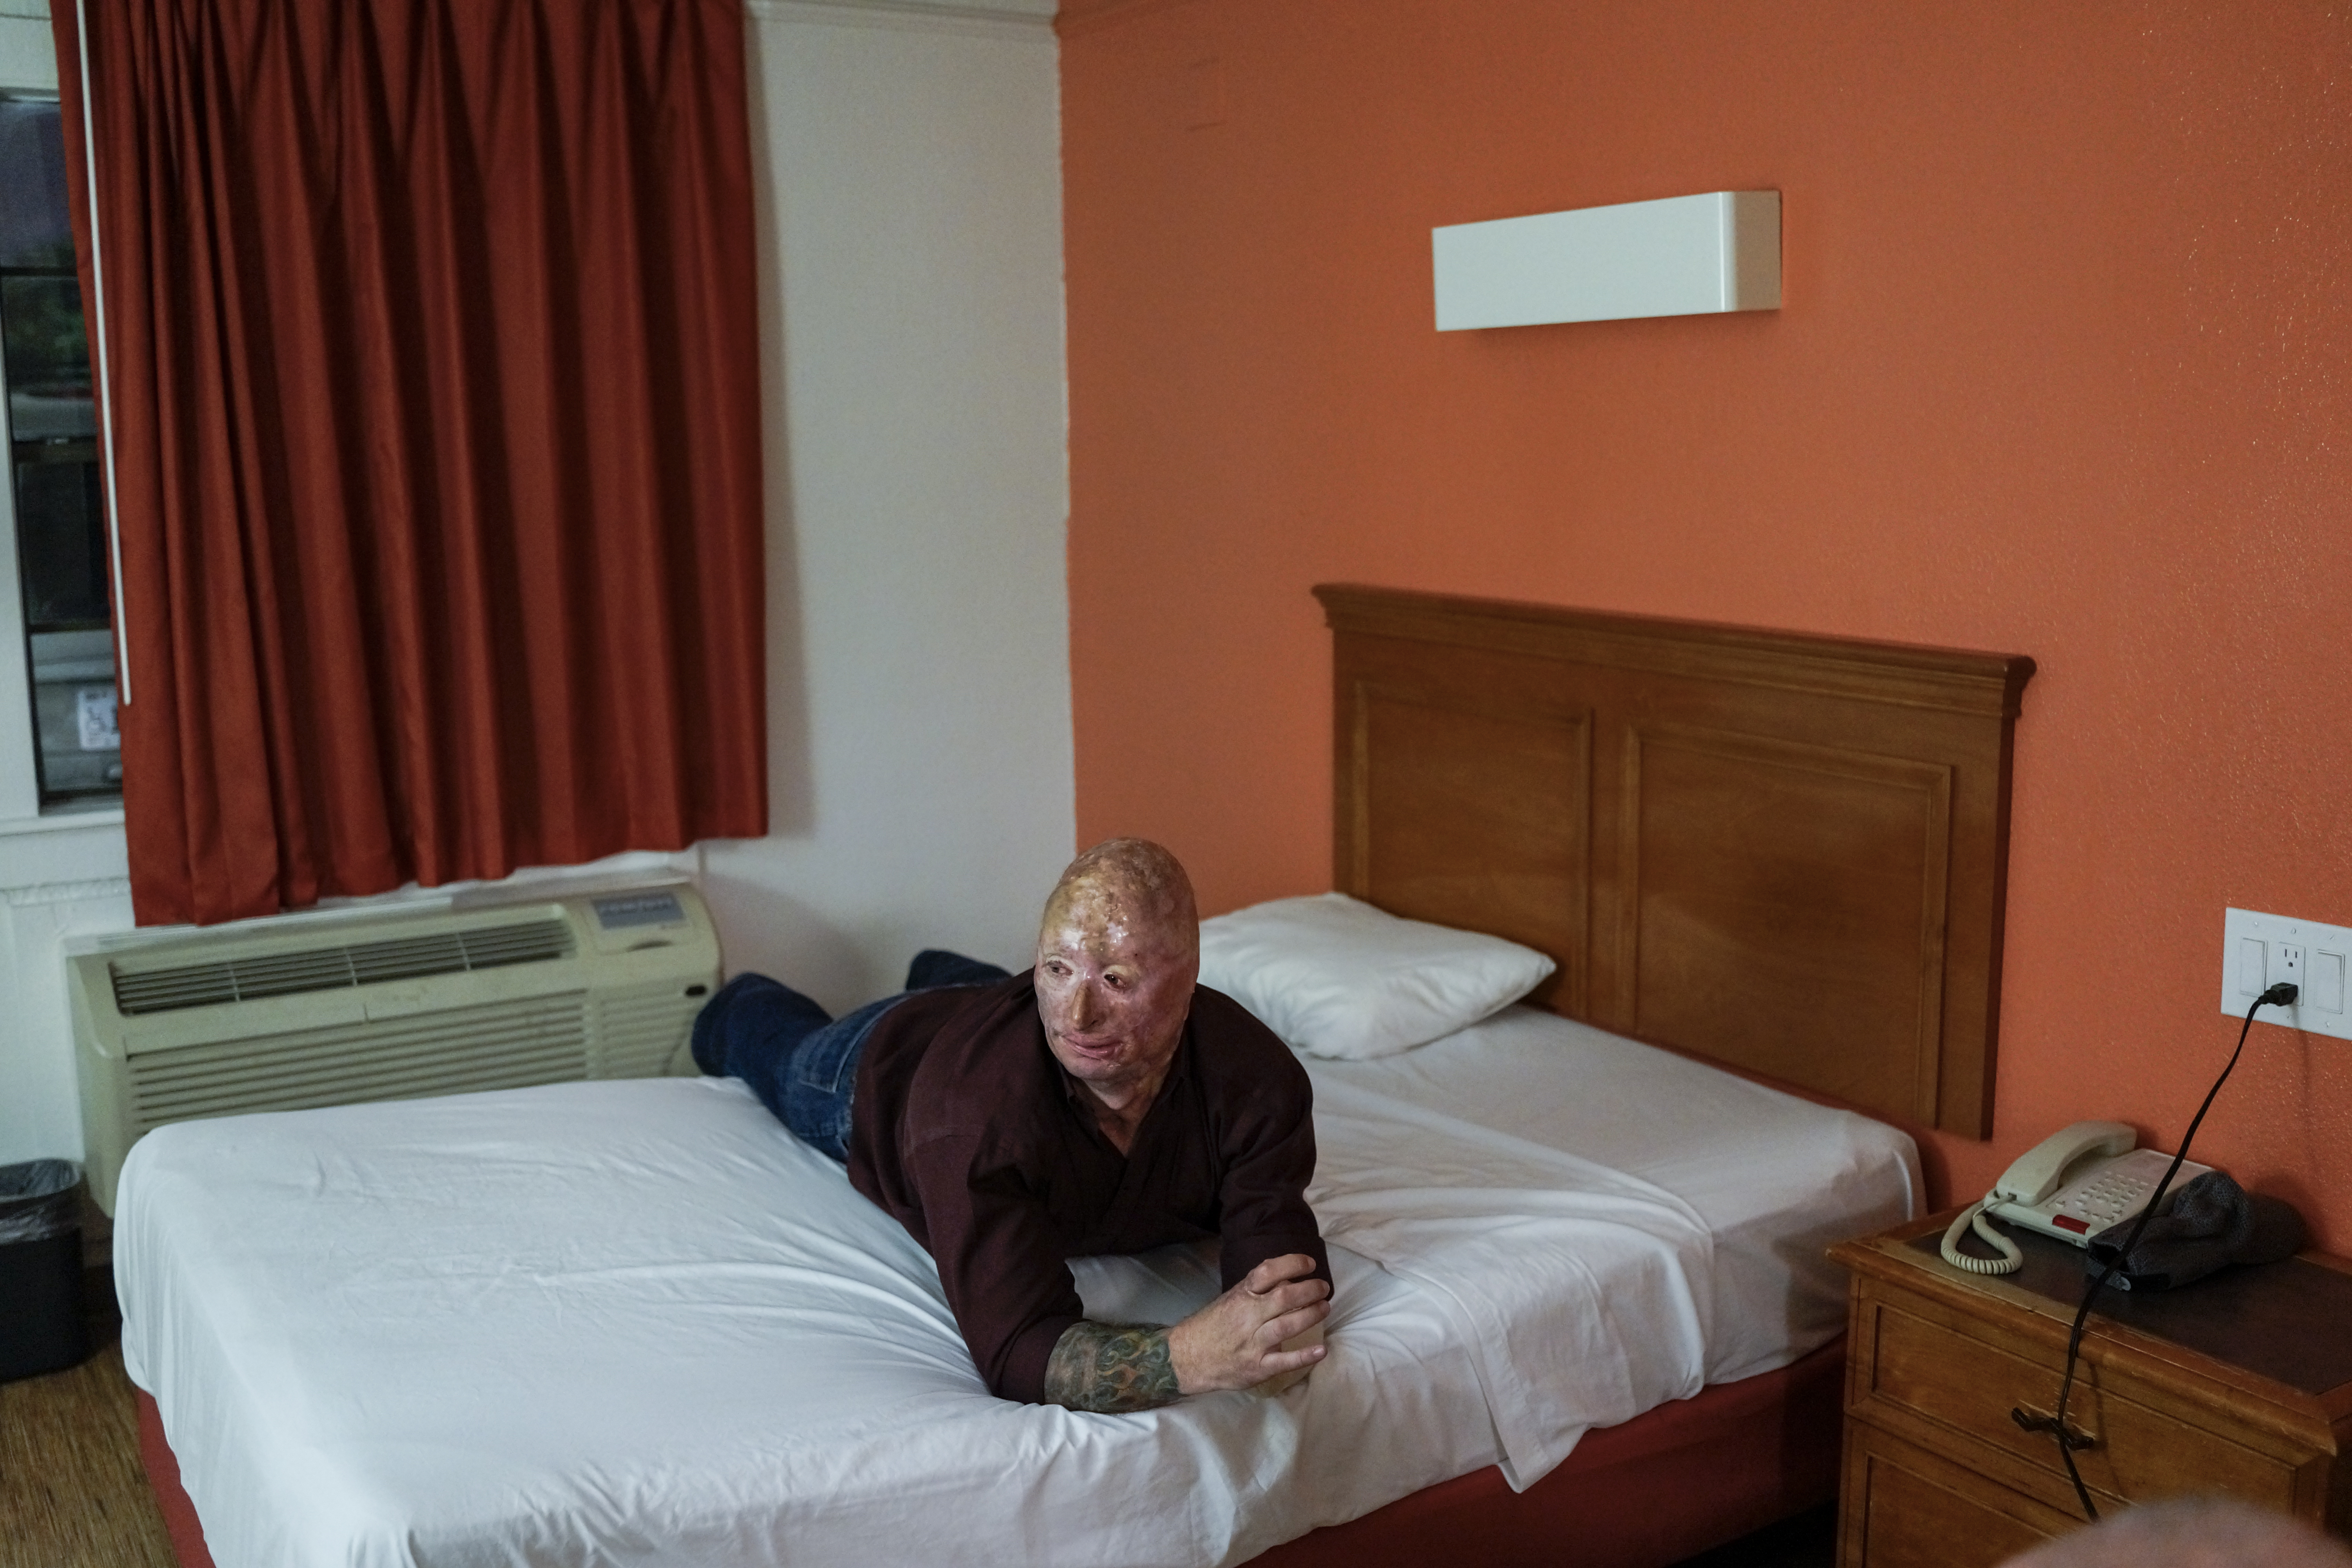 Bobby Henline, 41, is a veteran of four tours to Iraq and the sole survivor of an IED blast that killed the other four soldiers in his humvee in Iraq in 2007. Henline is now a standup comedian launching a new career with a routine built around his injuries, seen here in his Motel 6 room after performing. Dallas, Texas, 2013.